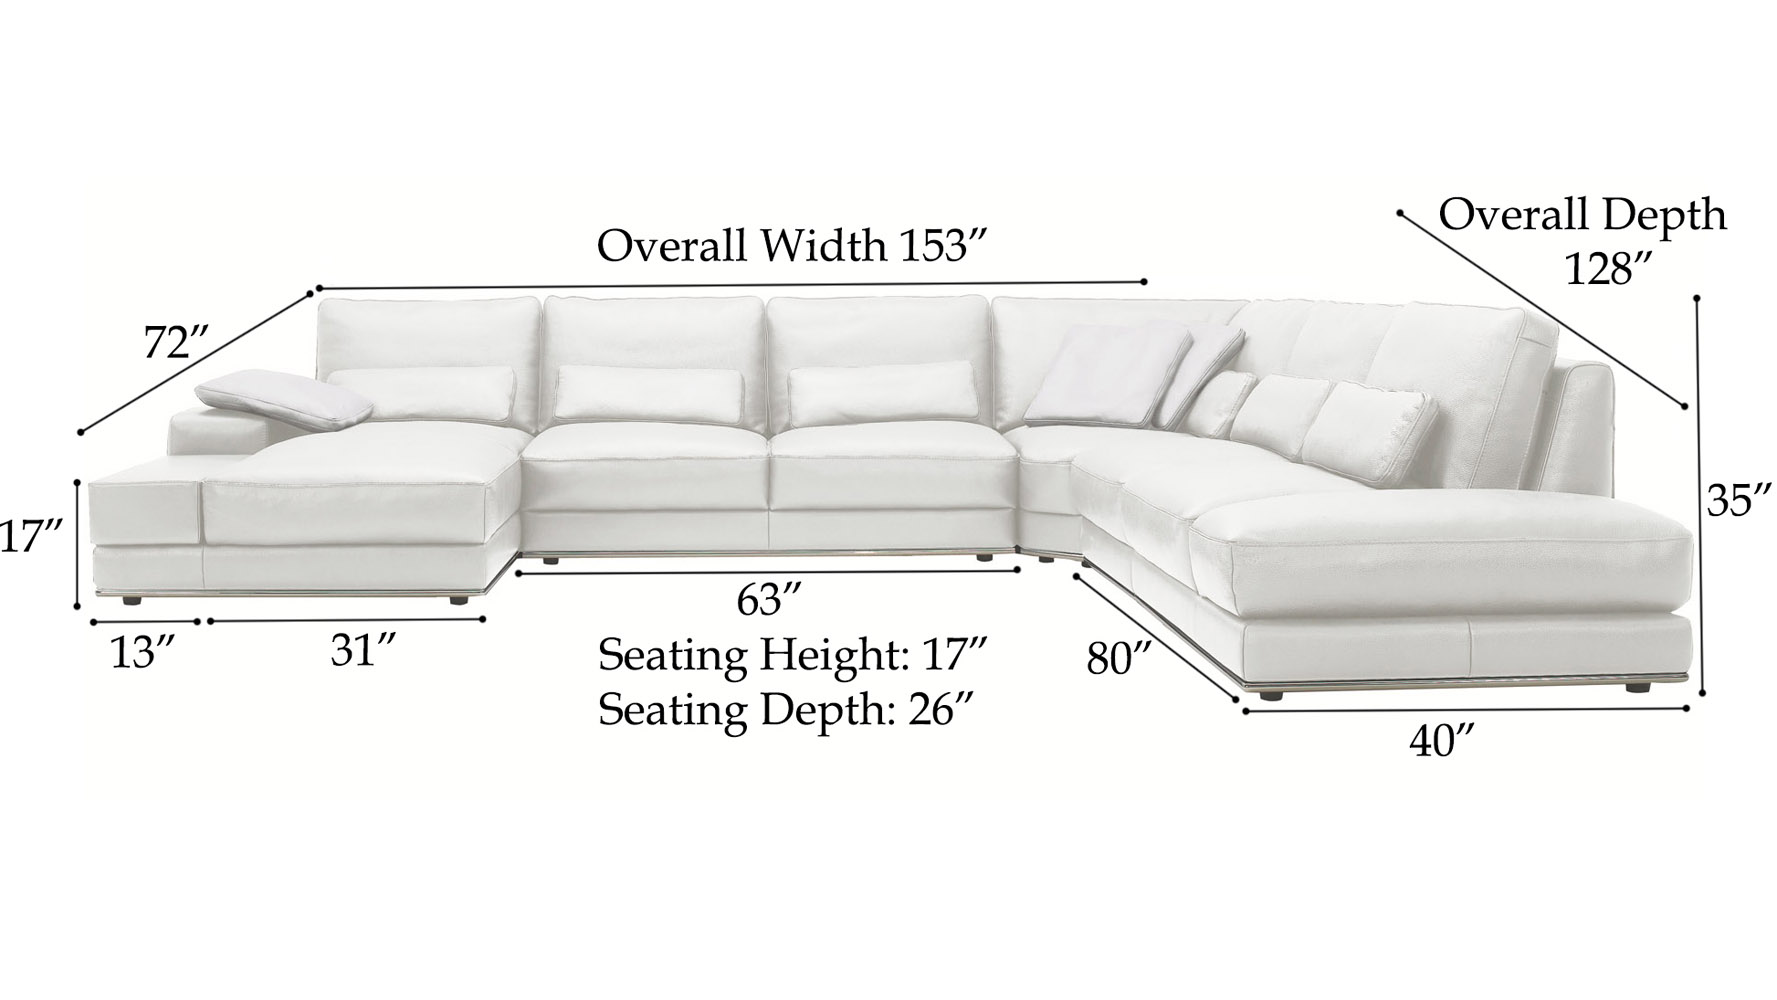 3 piece sectional sofa dimensions nrtradiant